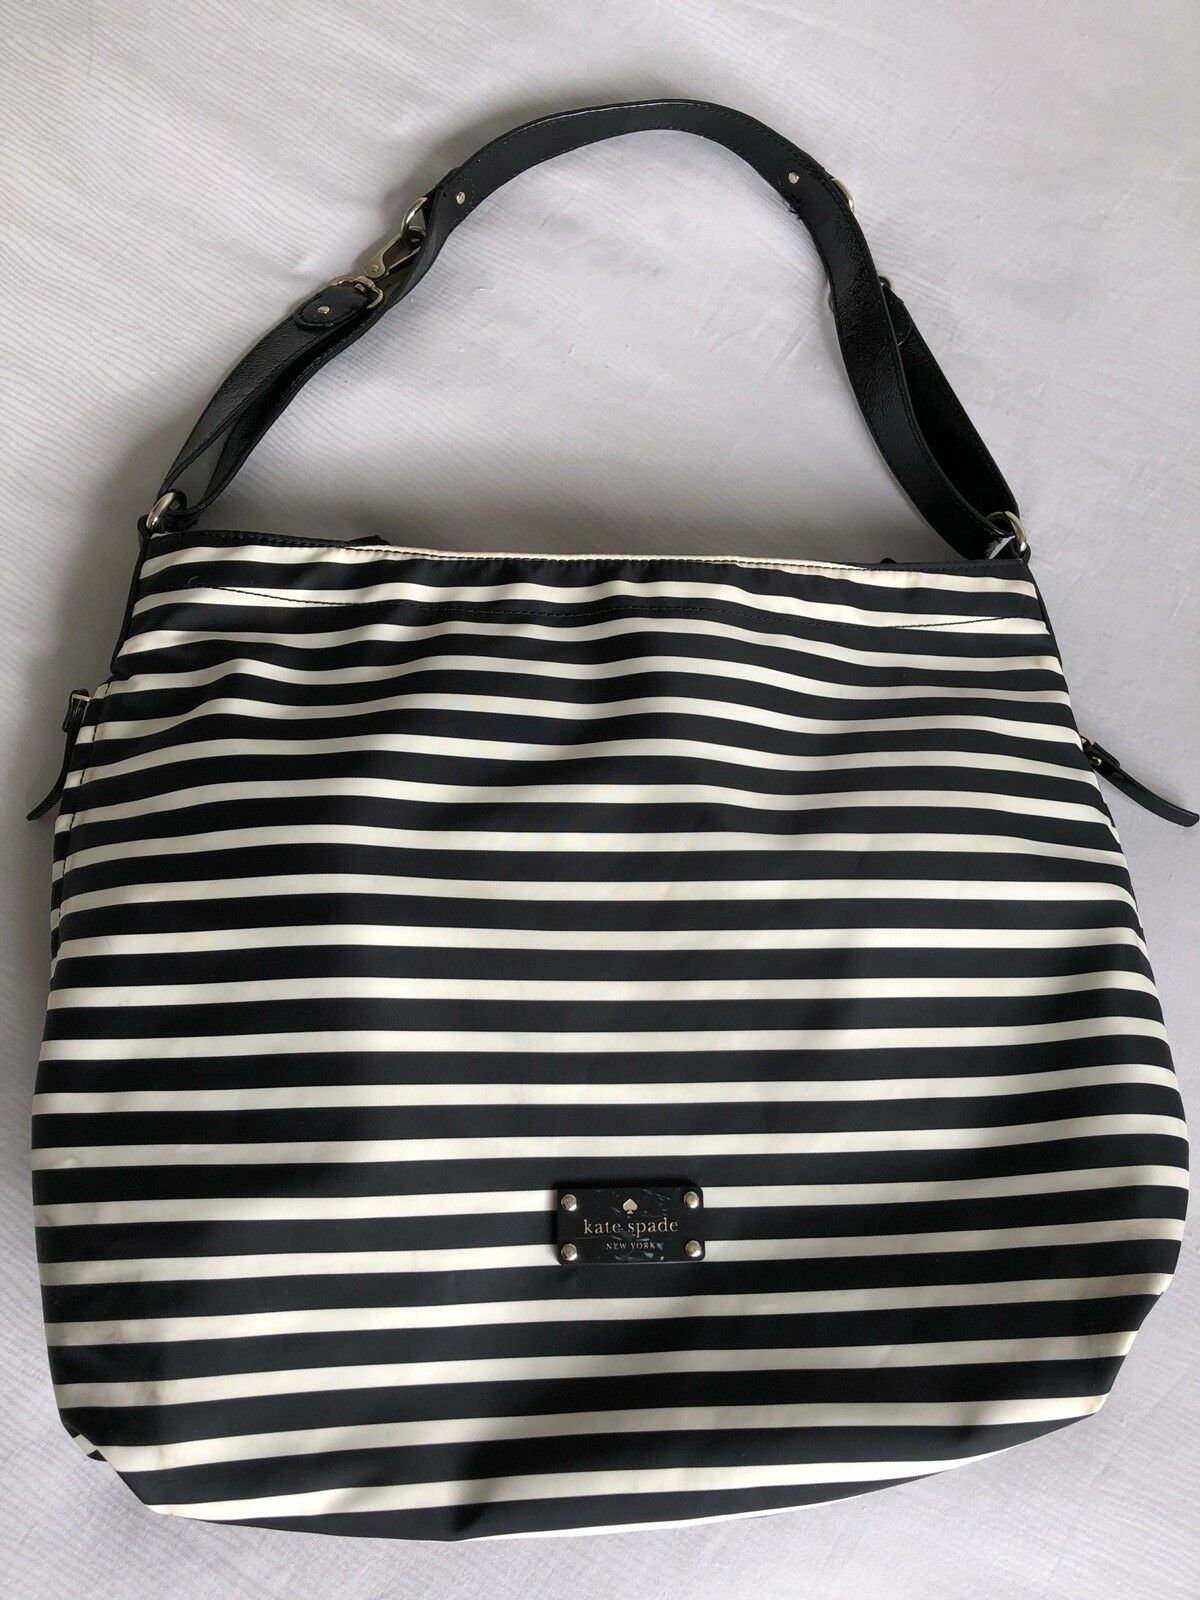 Kate Spade Large Baby Diaper Bag Black White Stripe With Extras Katespade Taden 1 Of 11only Available